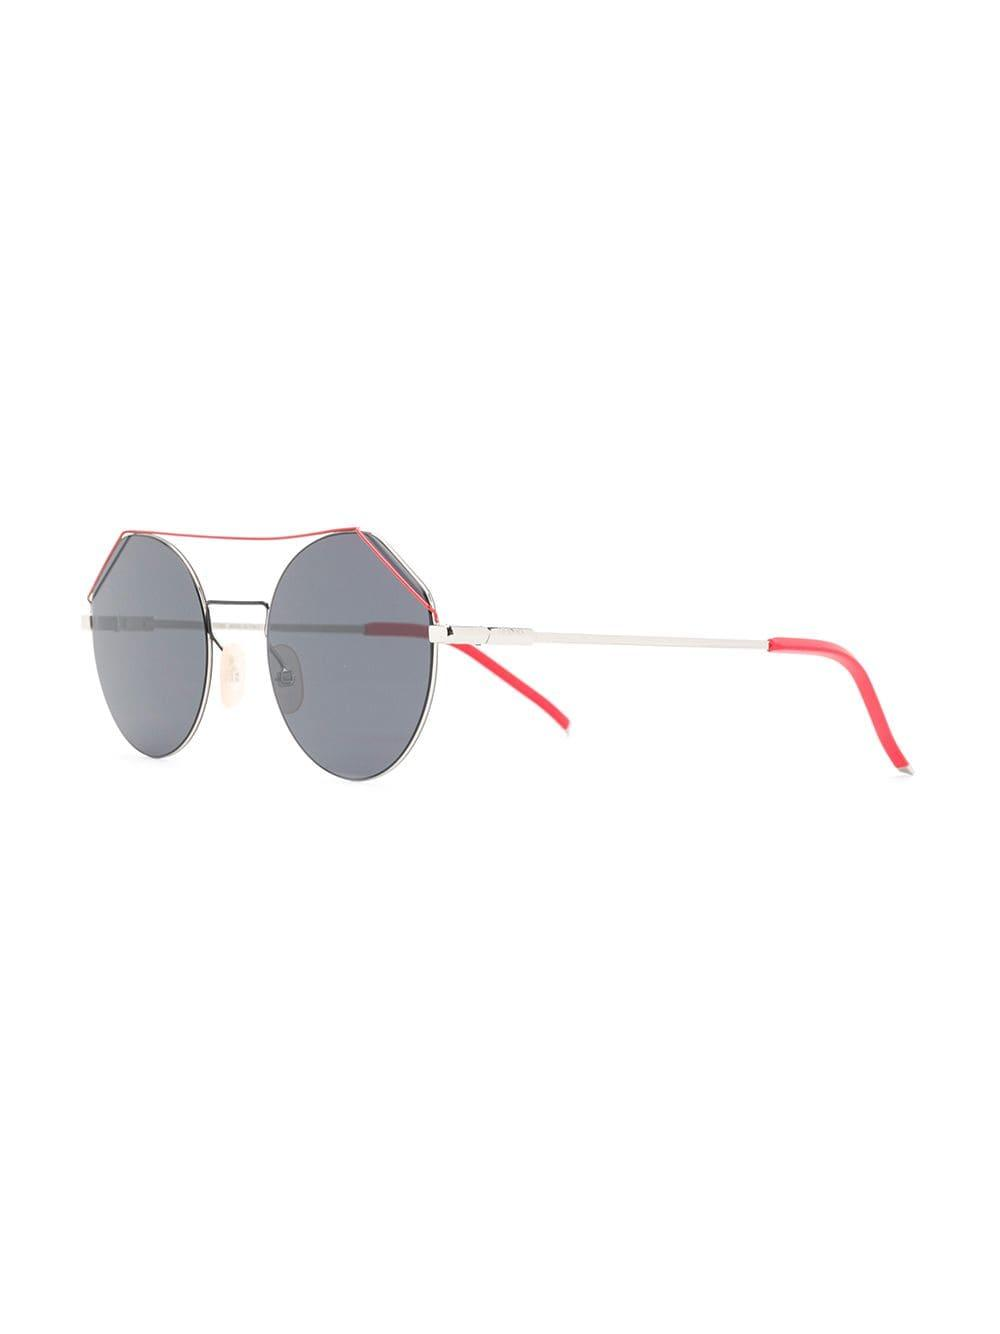 30ee3e729aaee Fendi - Metallic Eyeline Sunglasses - Lyst. View fullscreen